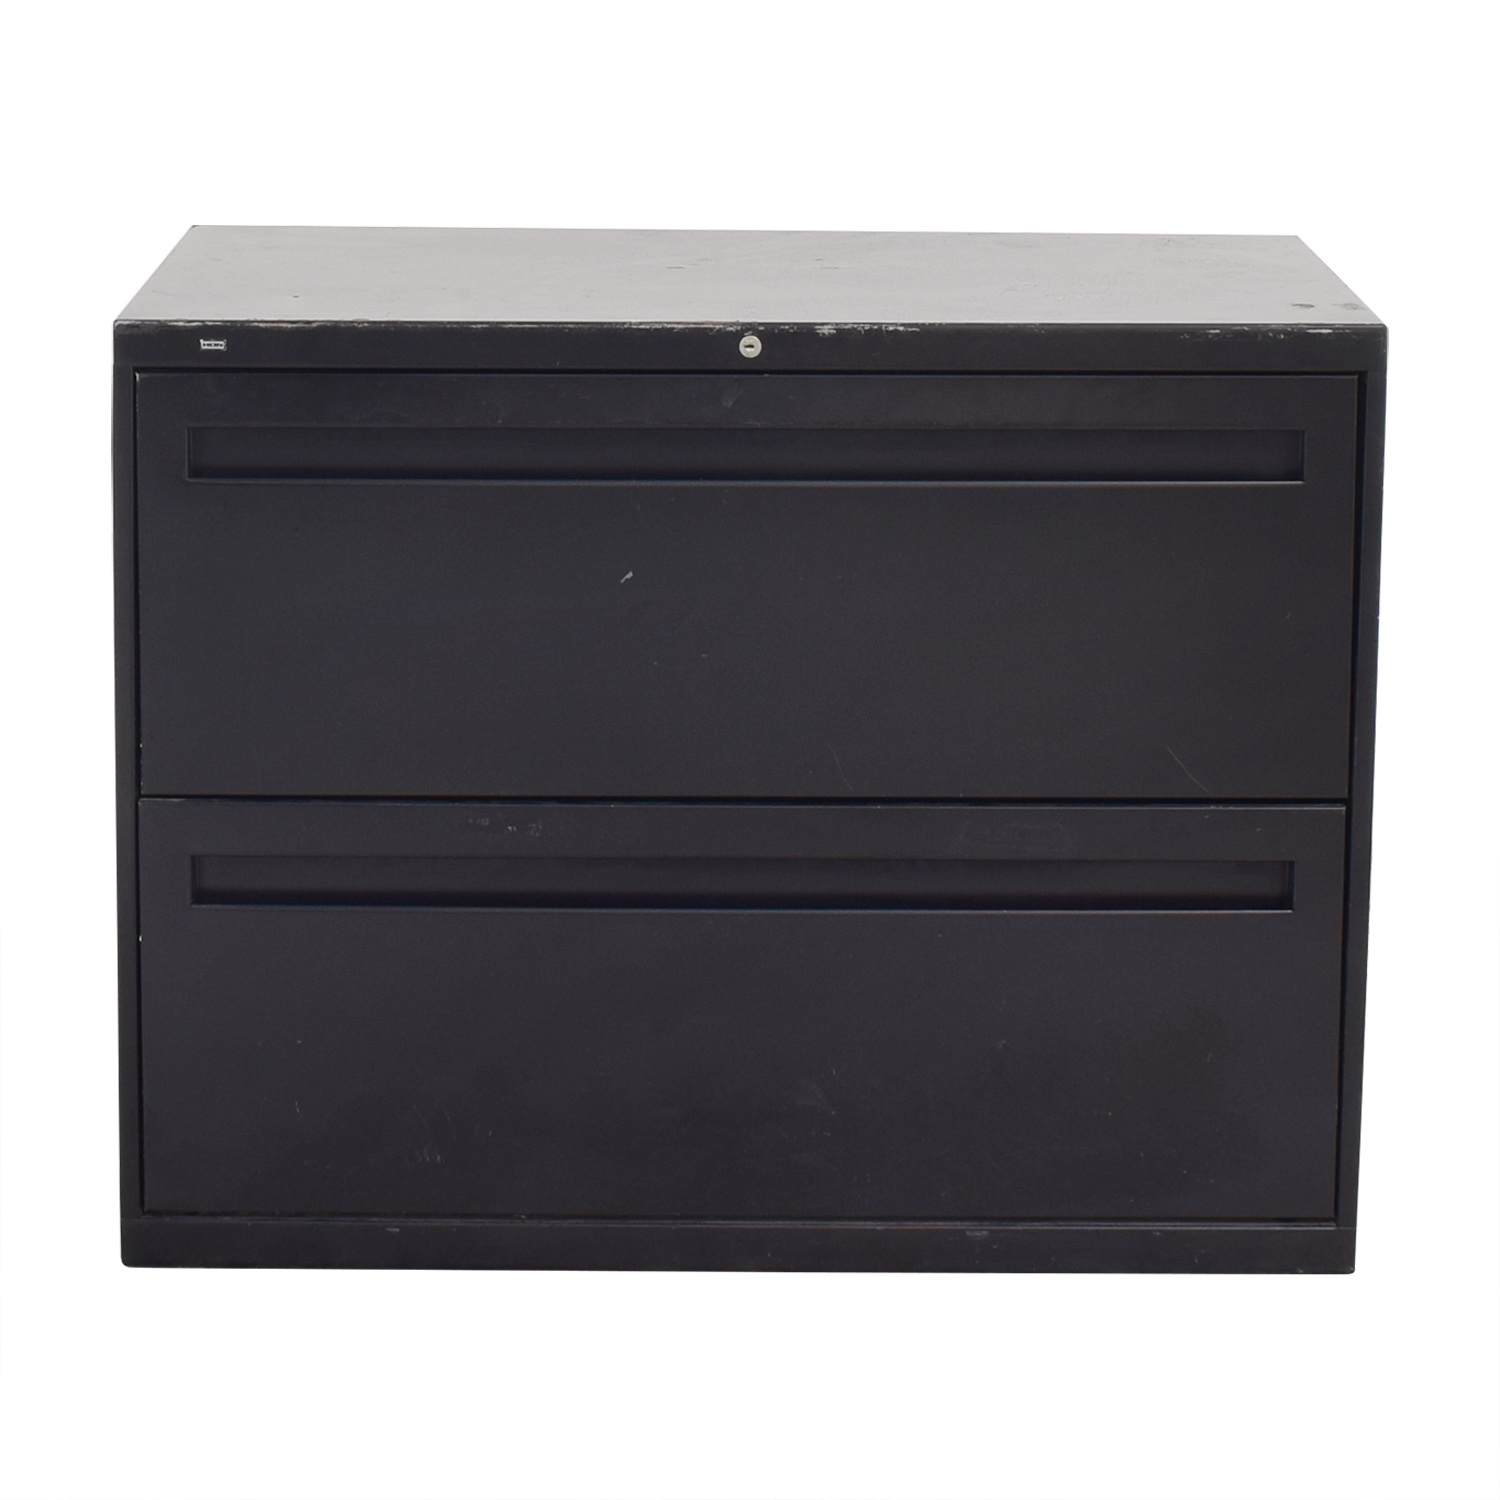 buy Hon HON 2-Drawer Lateral File Cabinet online